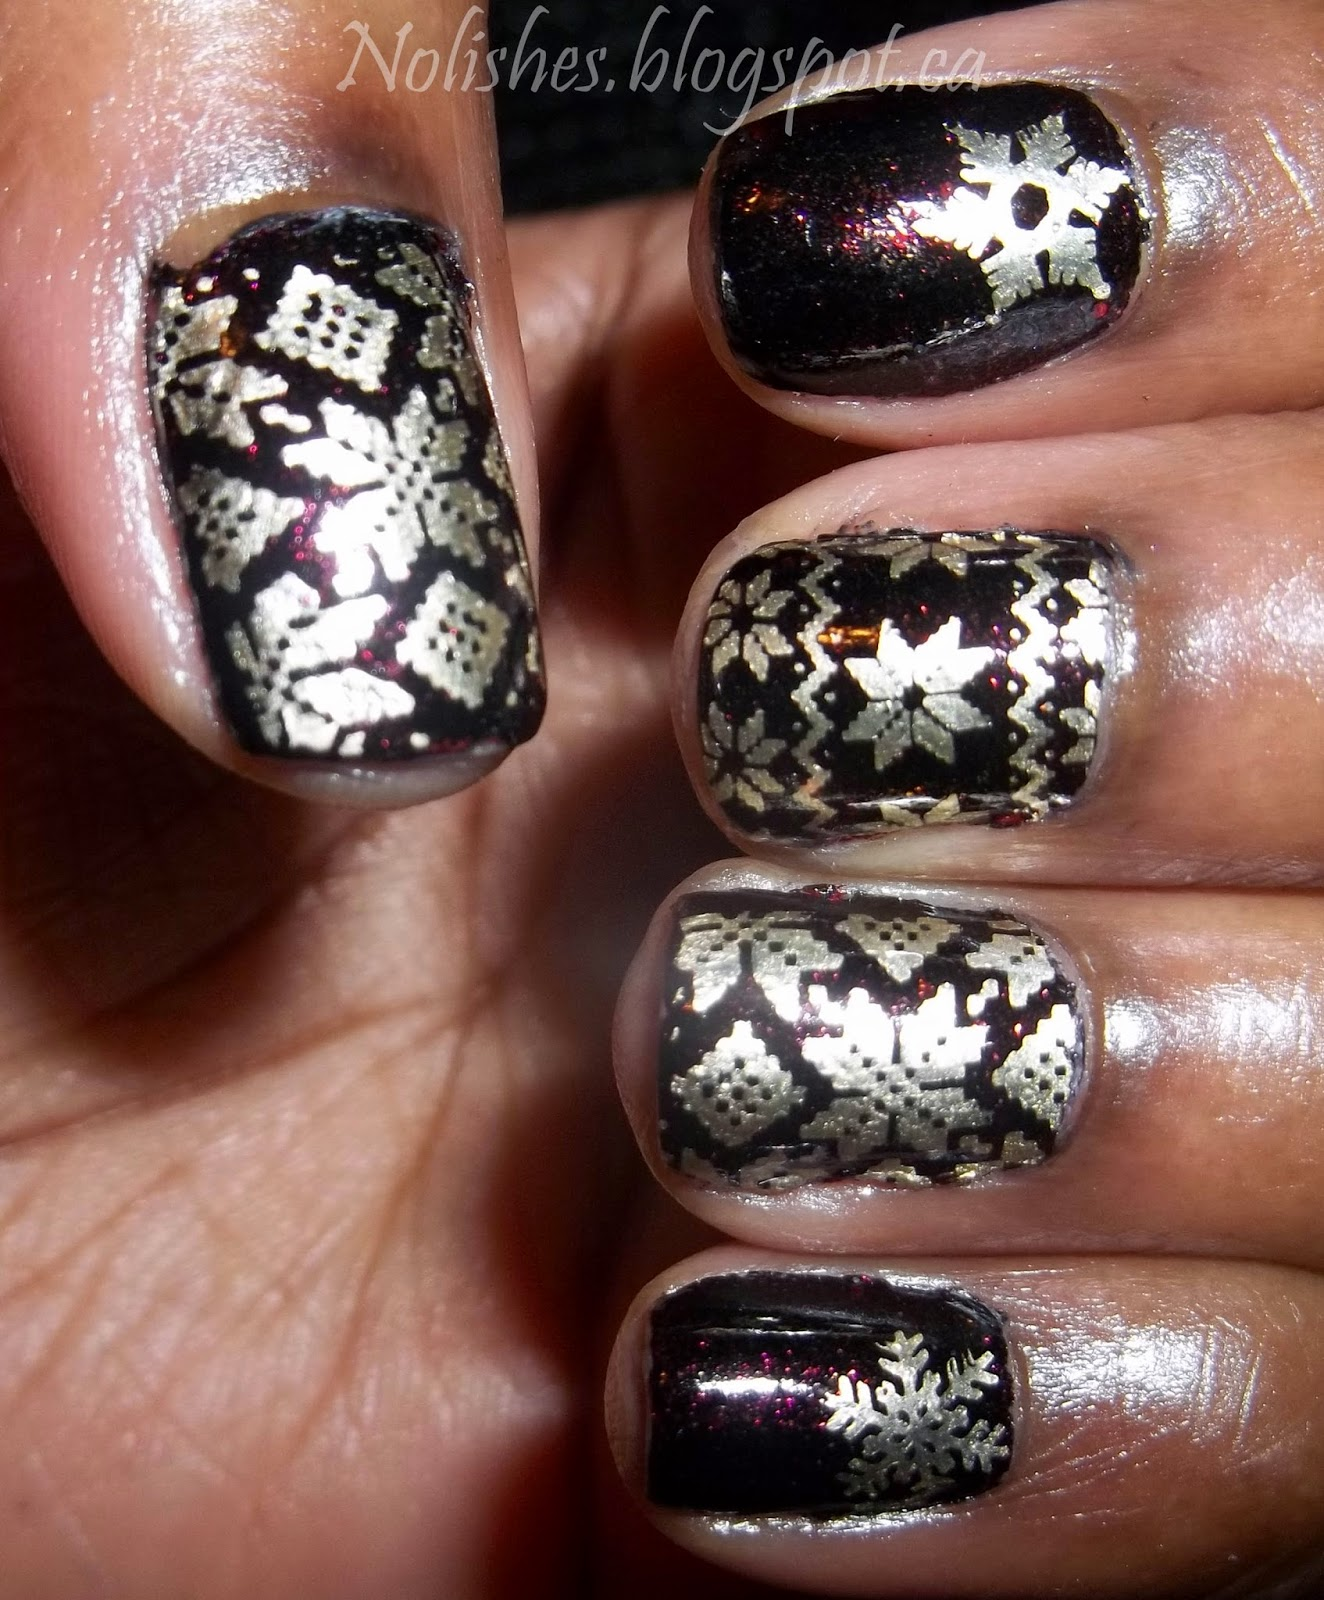 Nail stamping manicure featuring gold snowflake and nordic sweater prints, stamped over a black polish with deep red flecks of shimmer.